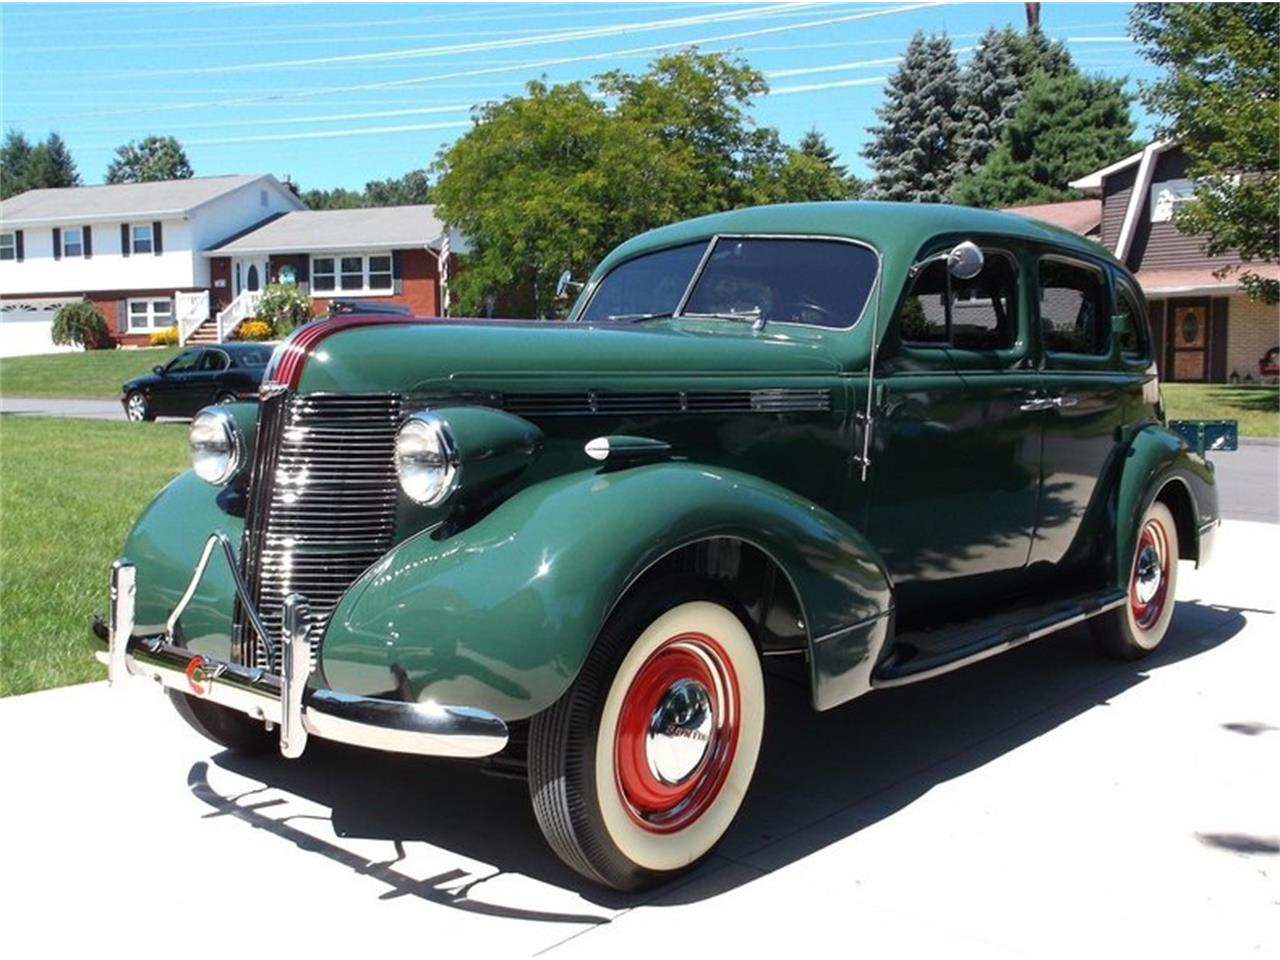 Large Picture of '37 Silverstreak Touring Sedan - LUN1